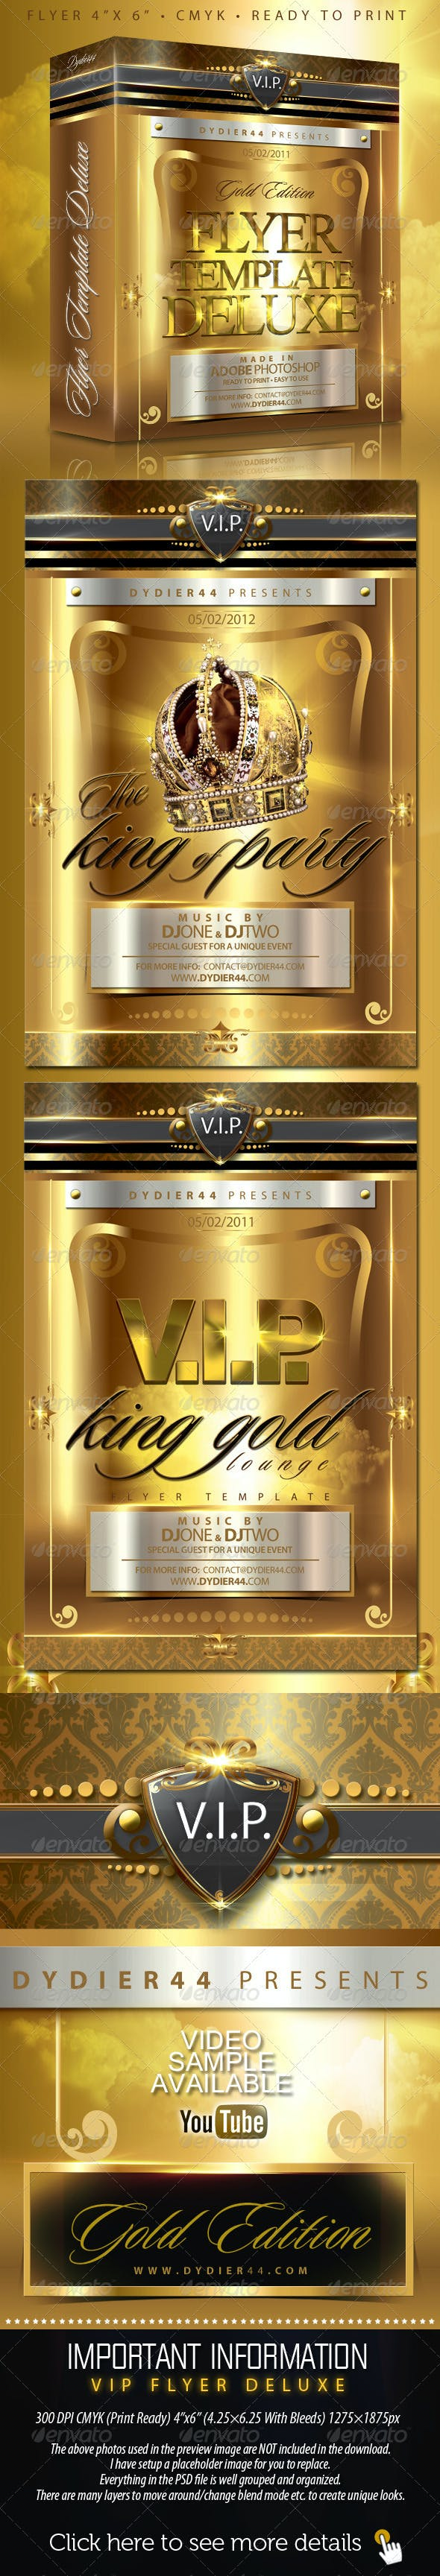 v i p gold deluxe flyer template 4x6 by dydier44 graphicriver